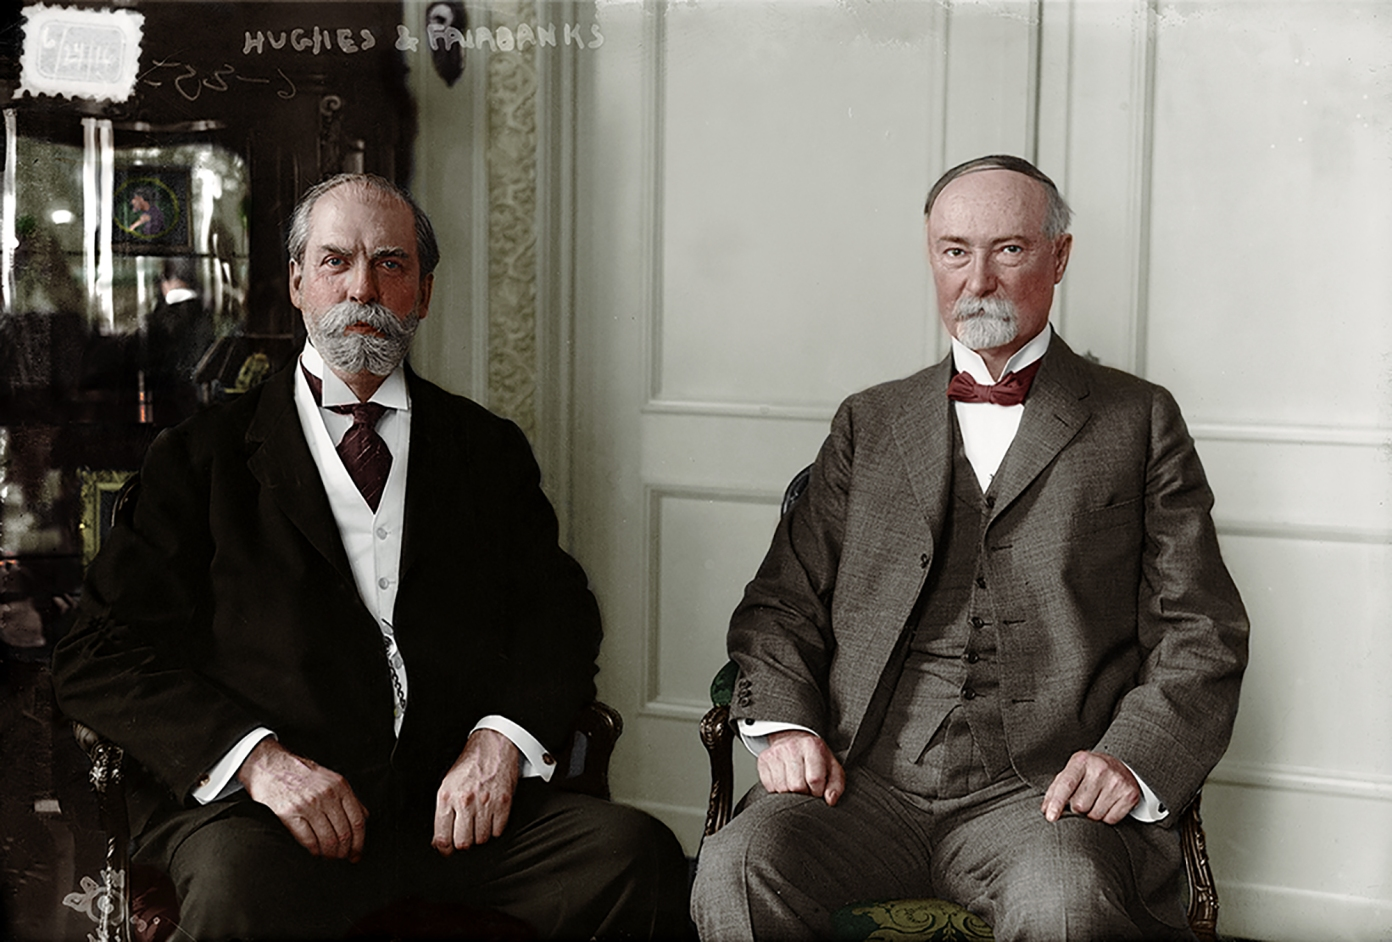 Charles Evans Hughes (left) and former Vice President under Theodore Roosevelt, Charles Fairbanks.